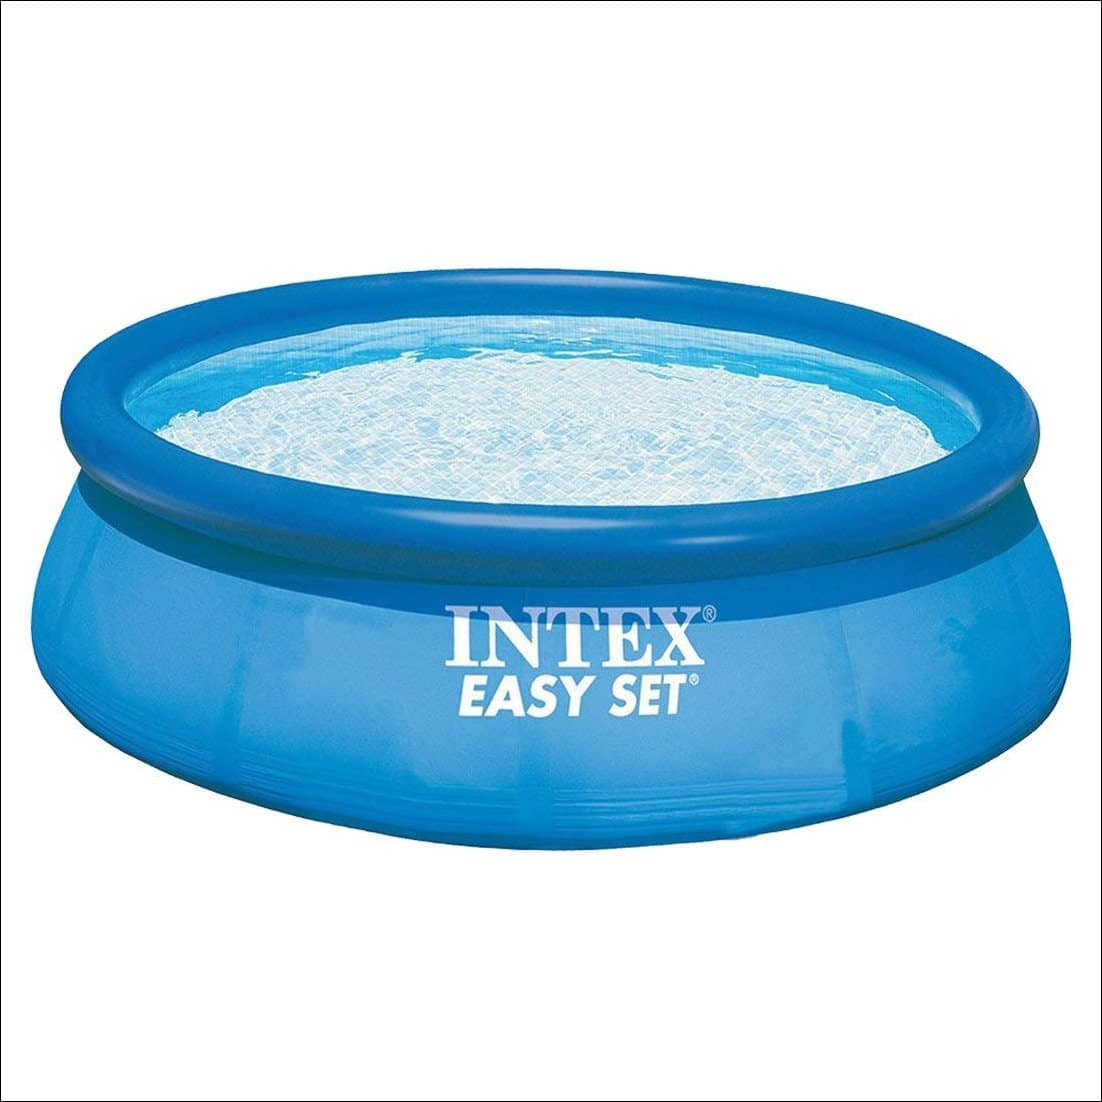 Intex Vs Bestway Review Best Above Ground Pool For 2019 Spatrade